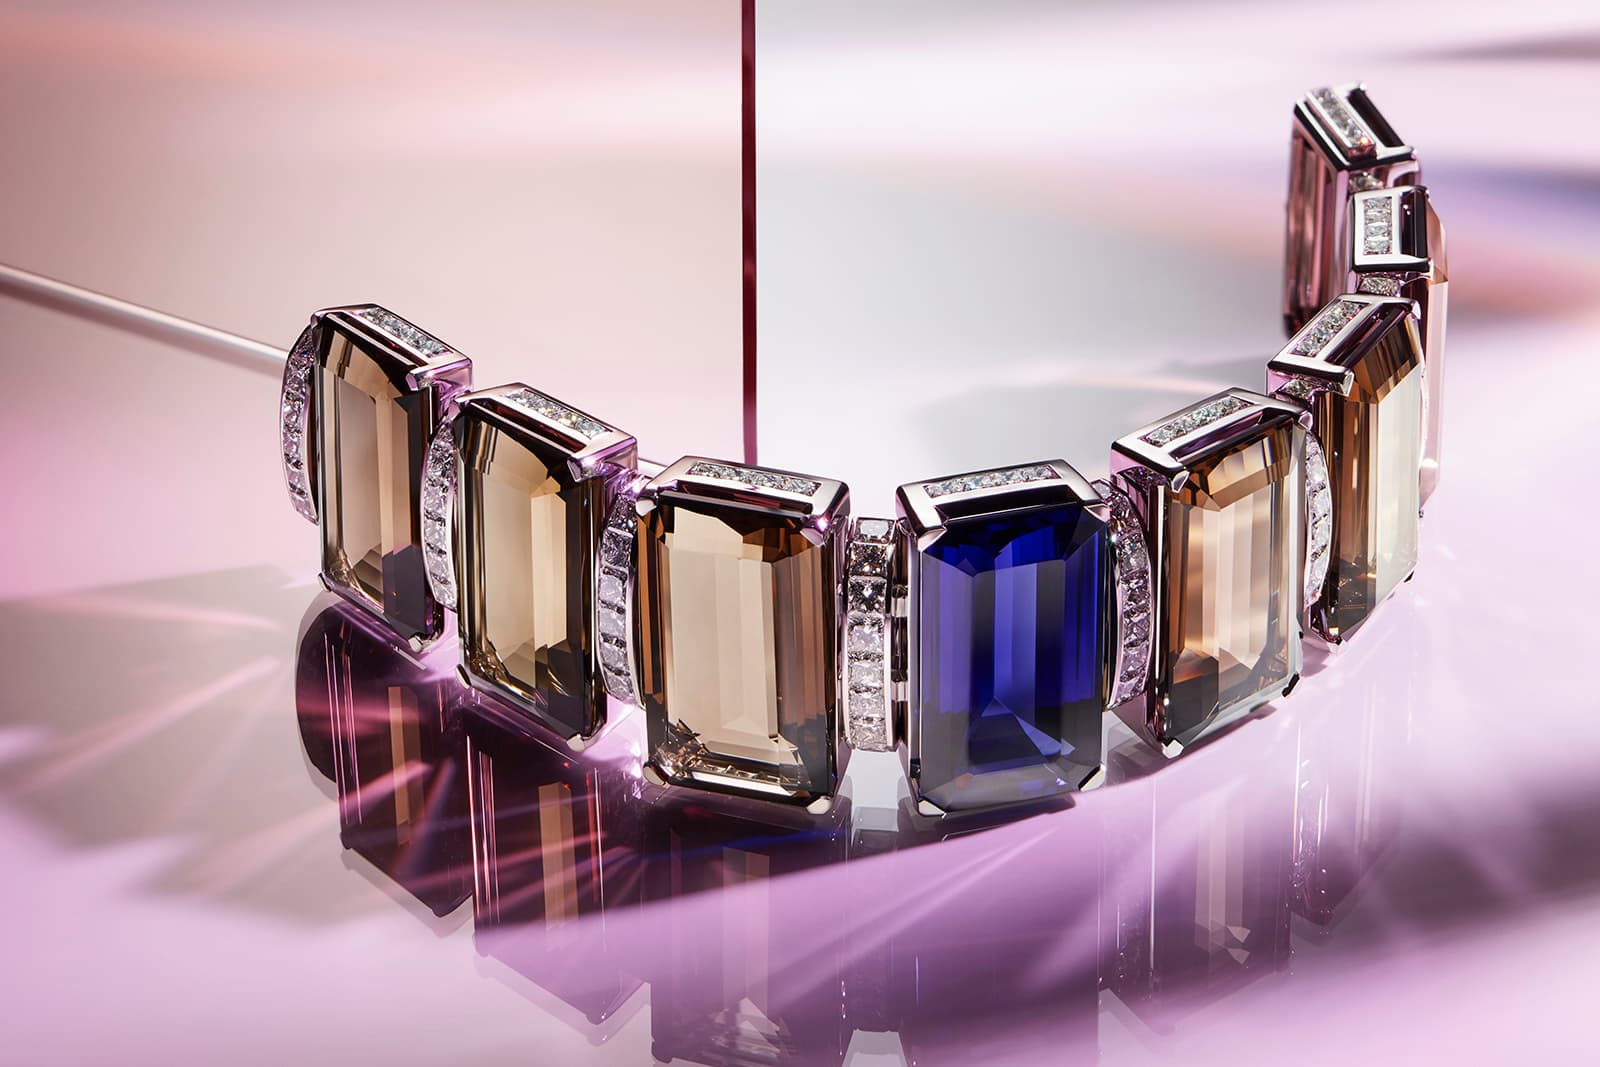 Tiffany&Co. Blue Book 2019 collection bracelet with over 55ct tanzanite, smoky quartz and diamonds in platinum